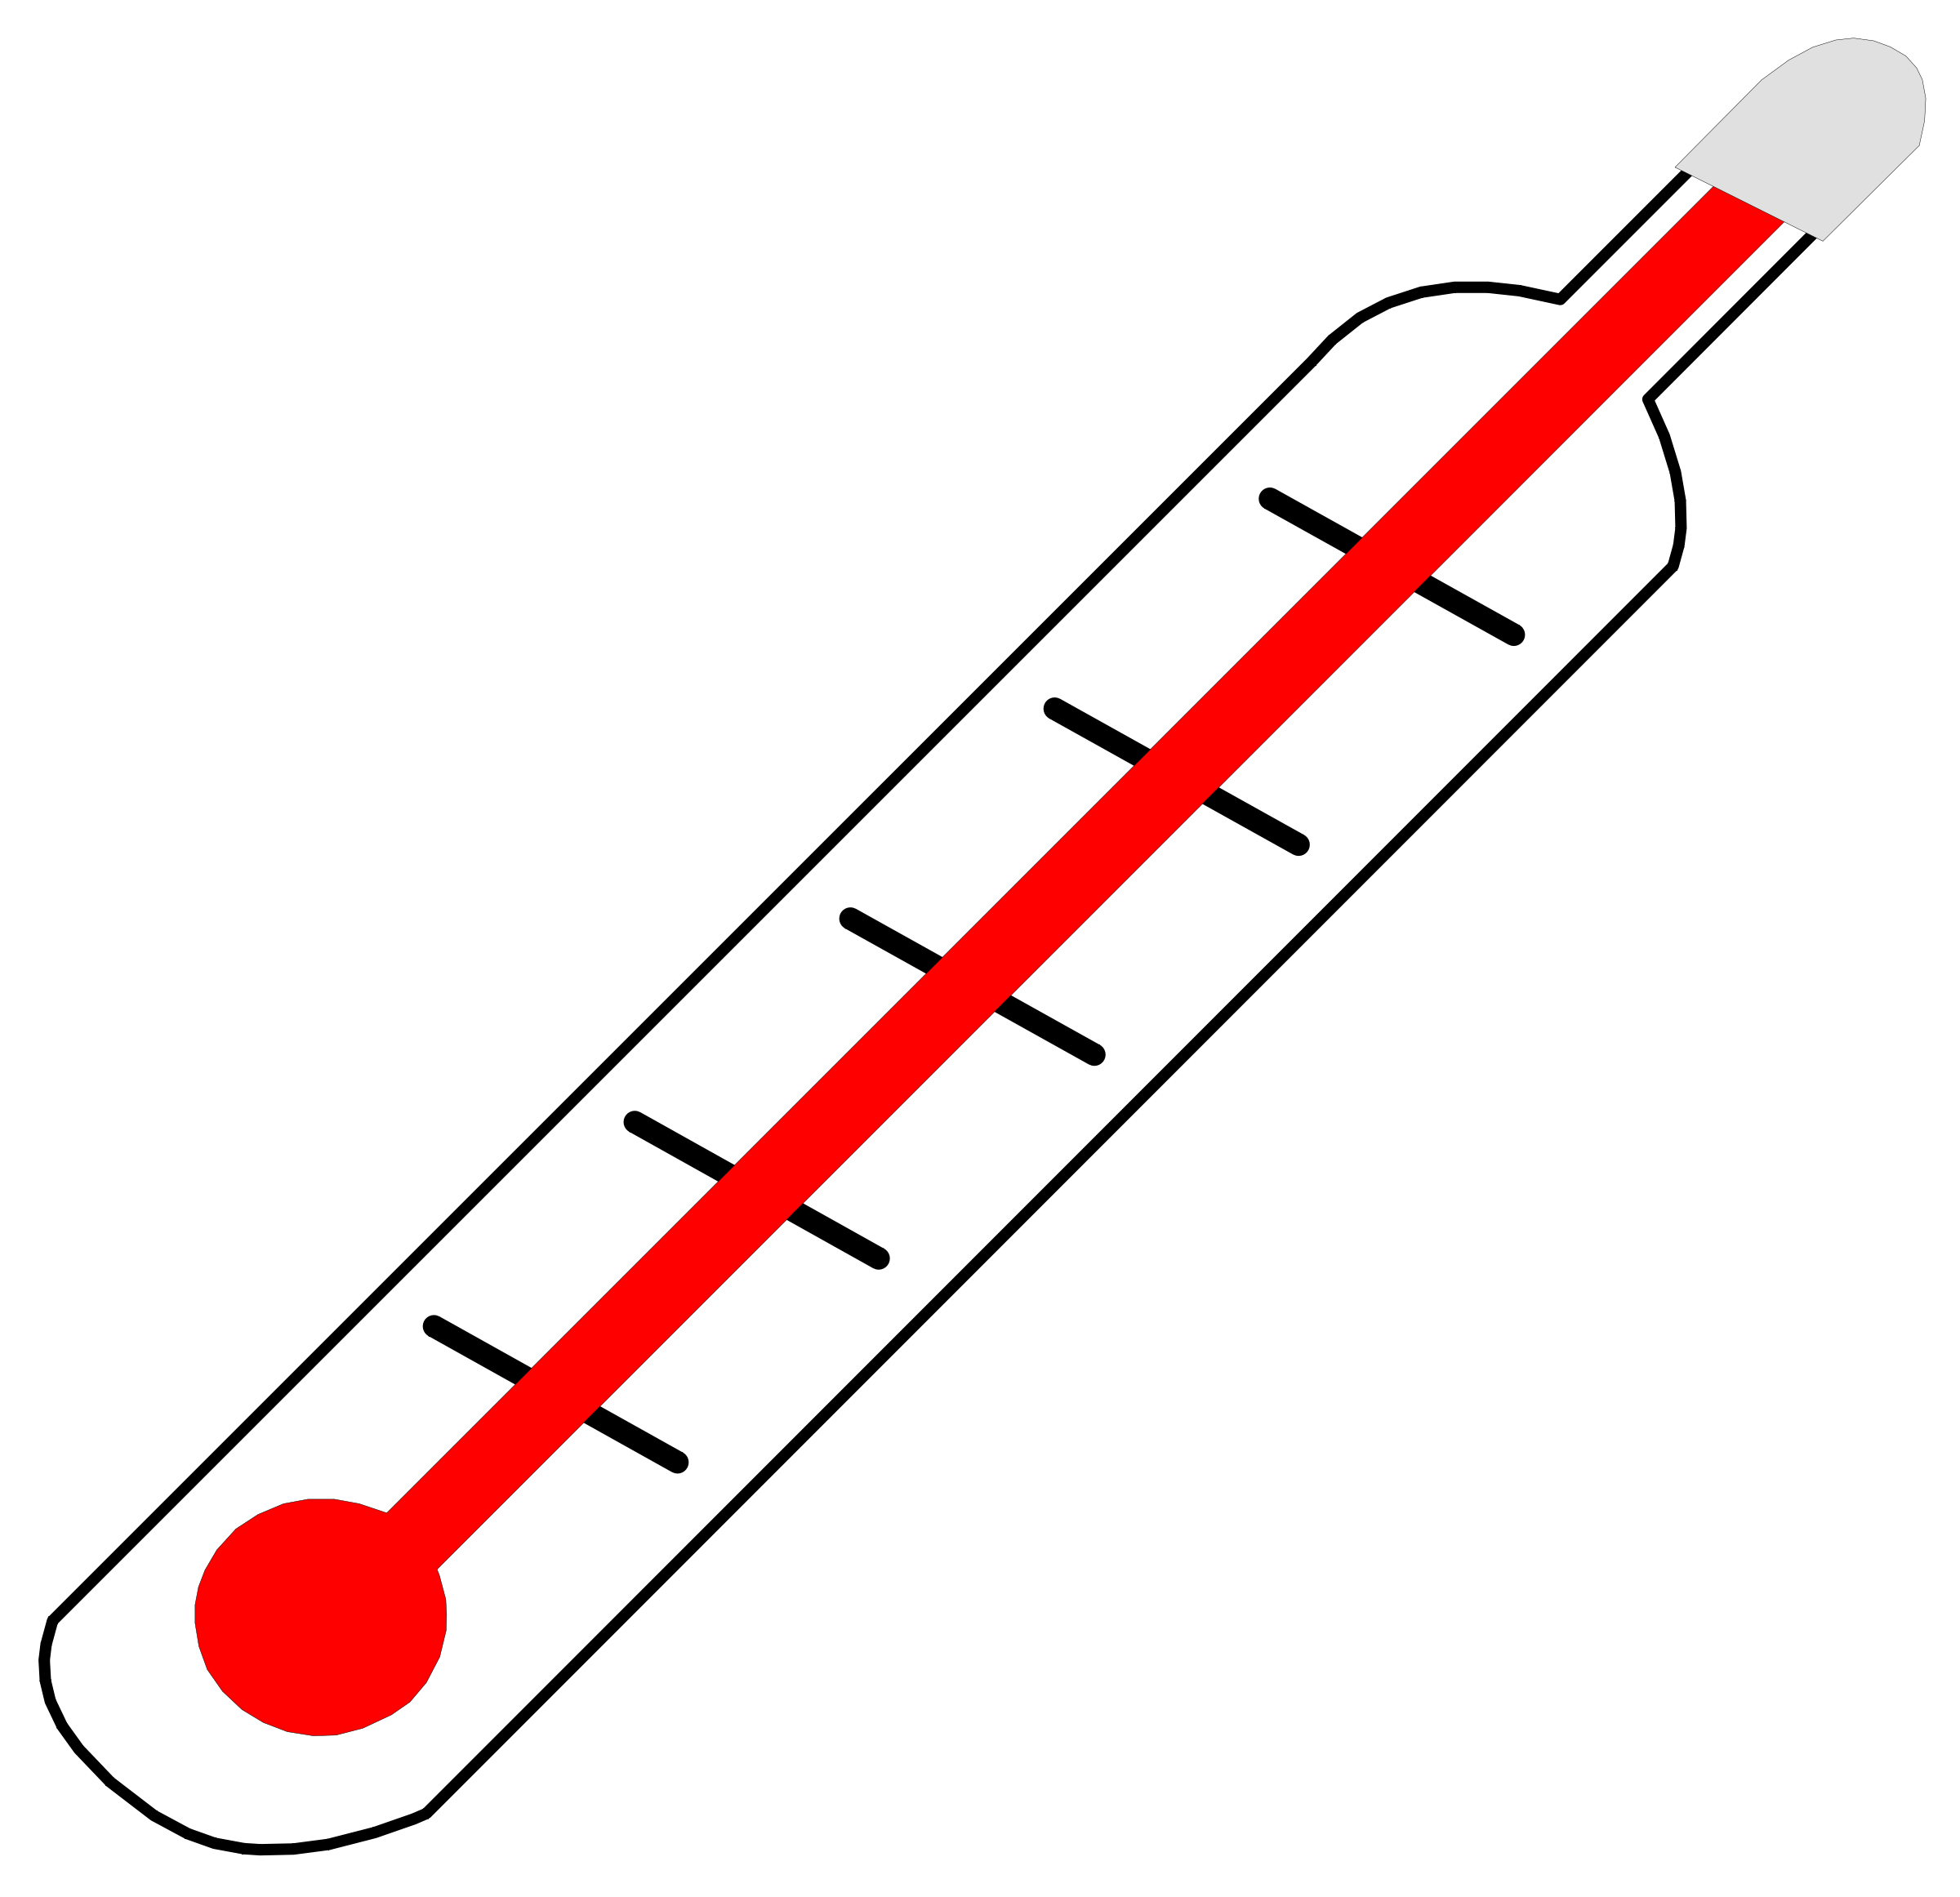 clipart transparent stock thermometer Clipart